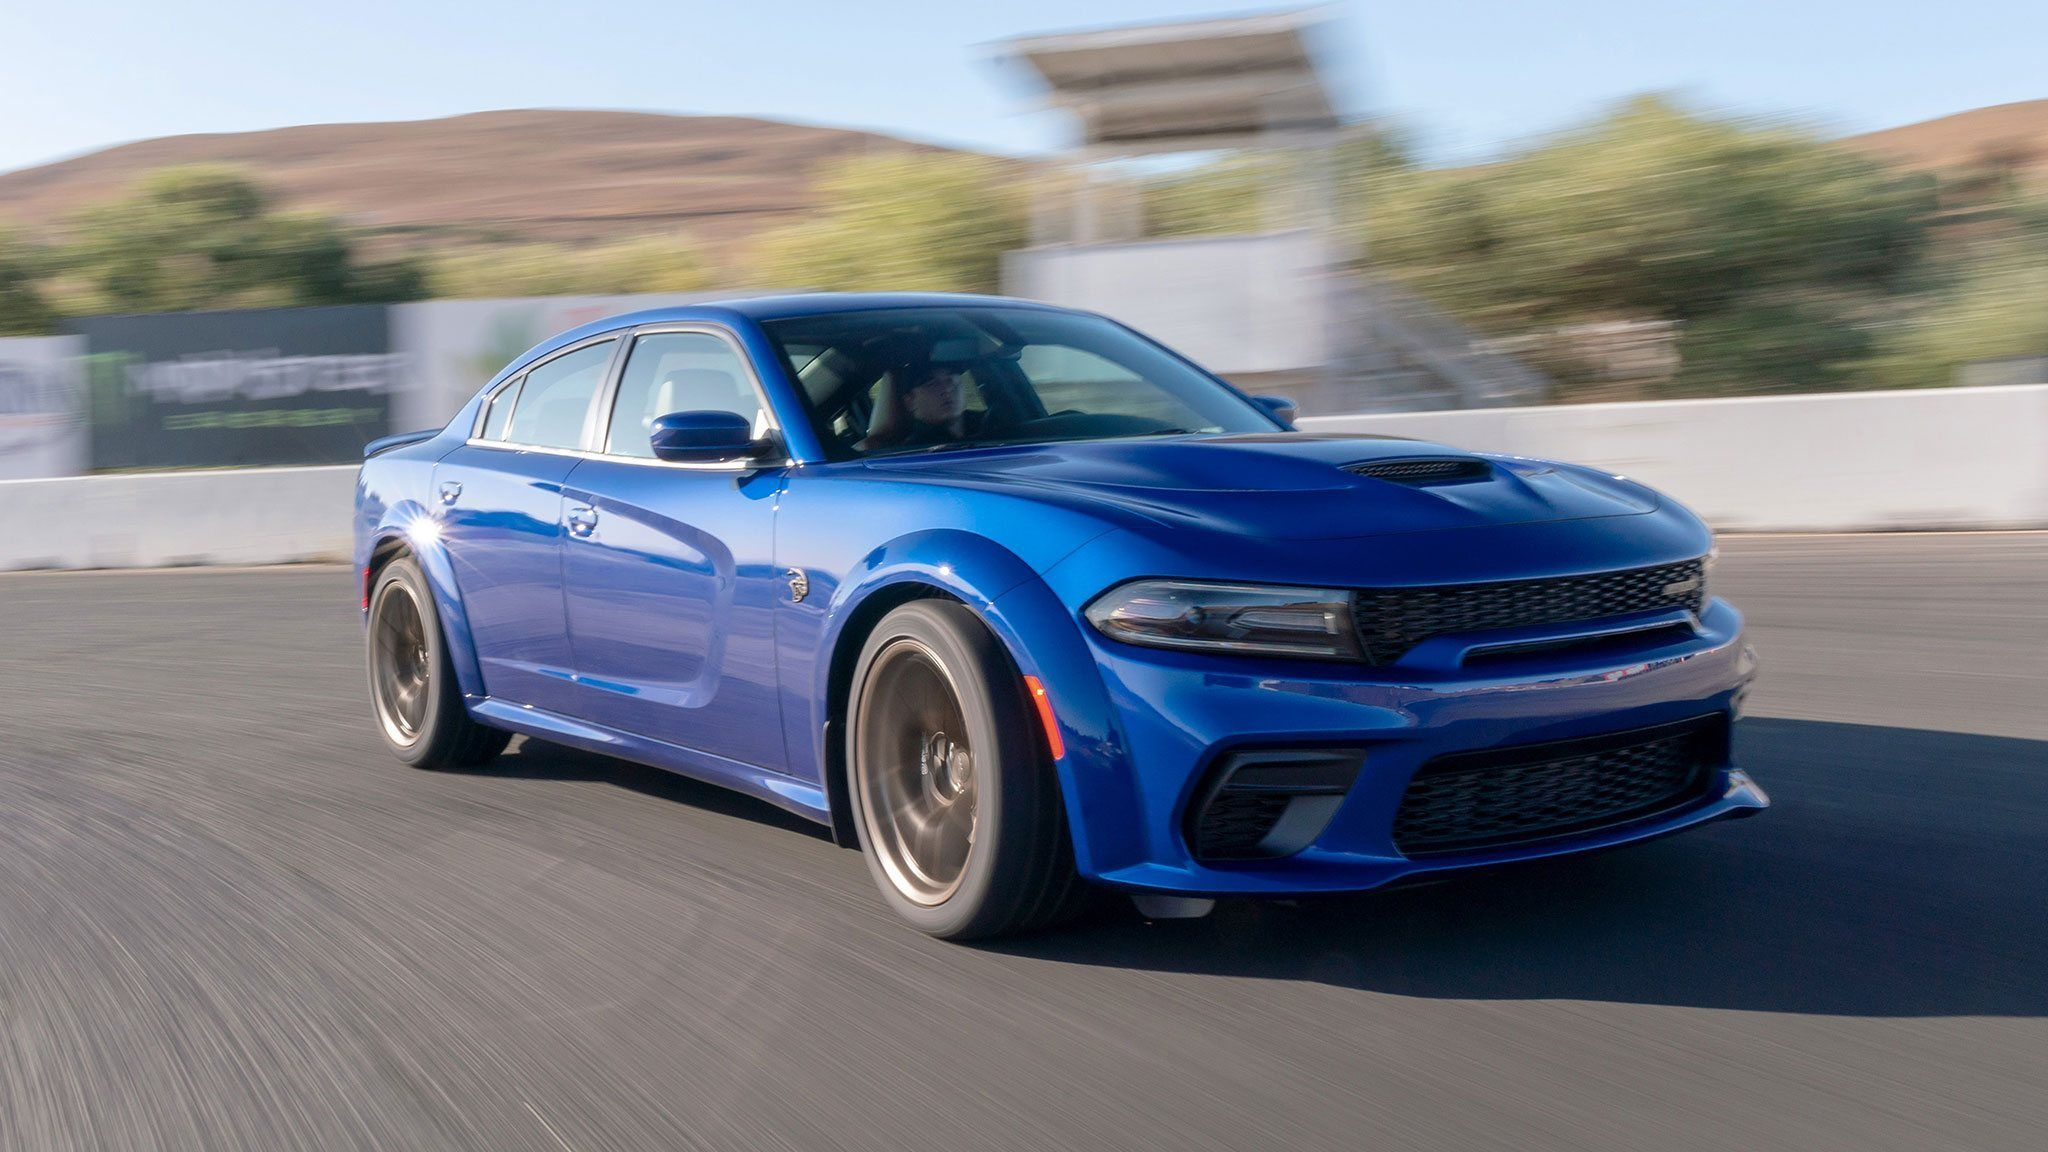 2020 Challenger Srt8 Hellcat Price Design And Review In 2020 Dodge Charger Dodge Challenger Srt Hellcat Dodge Charger For Sale